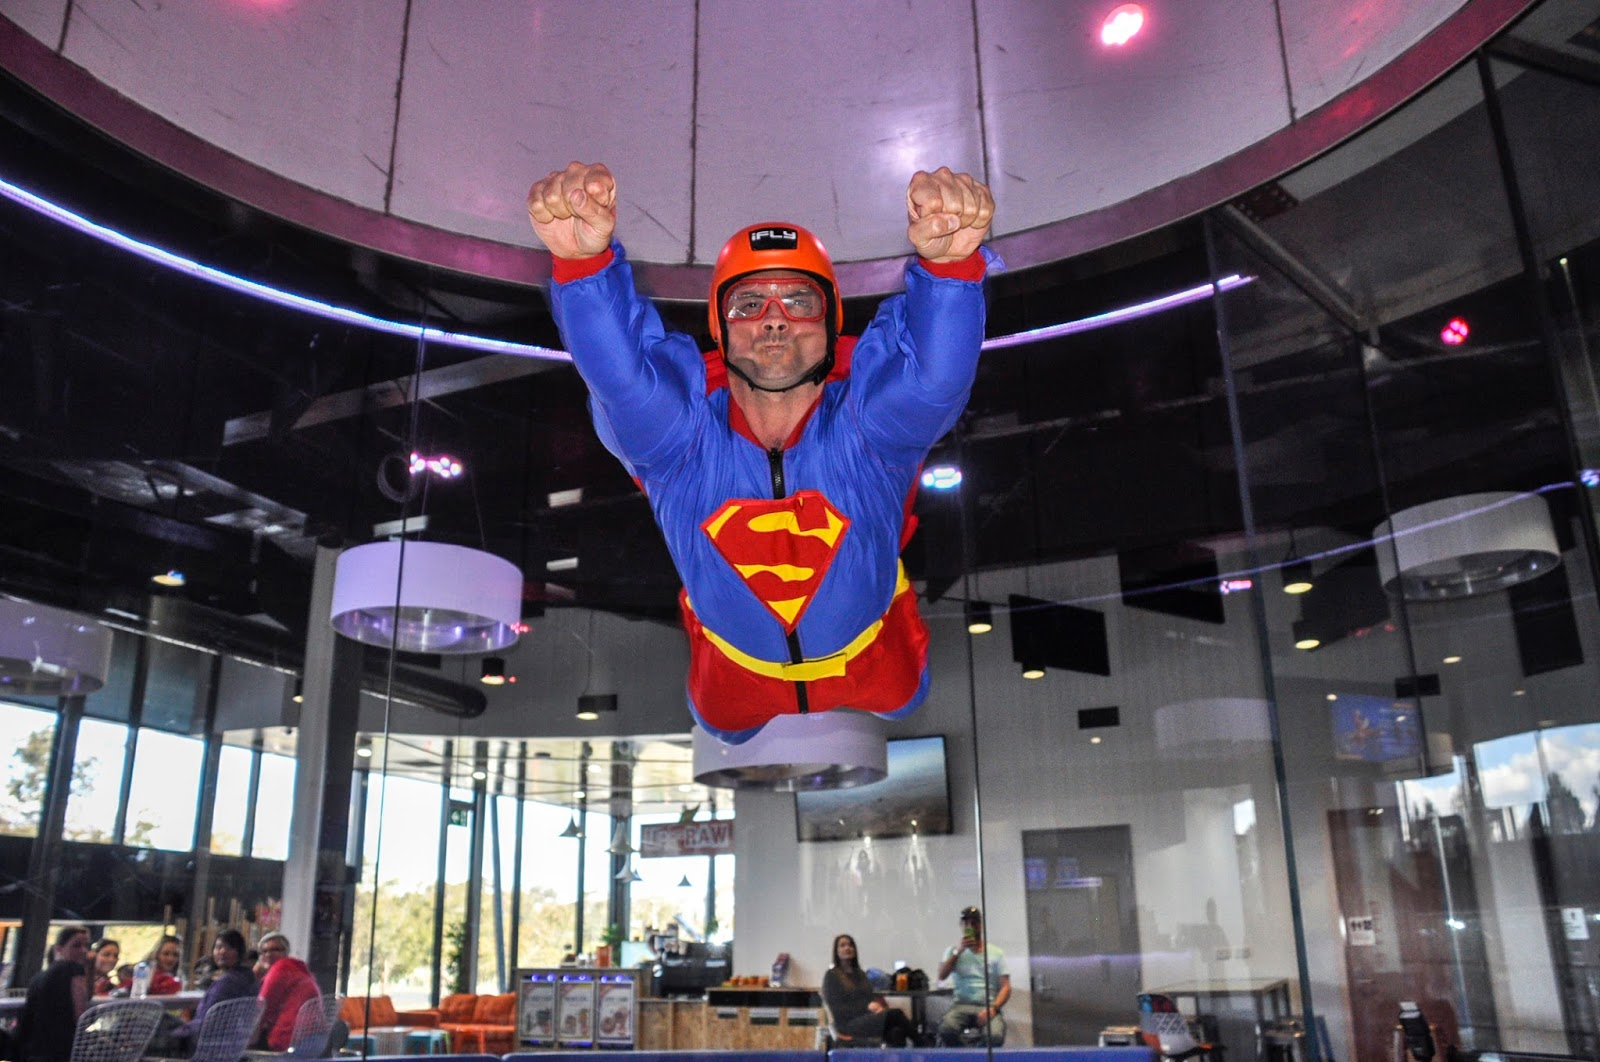 supermen dress - indoor skydiving